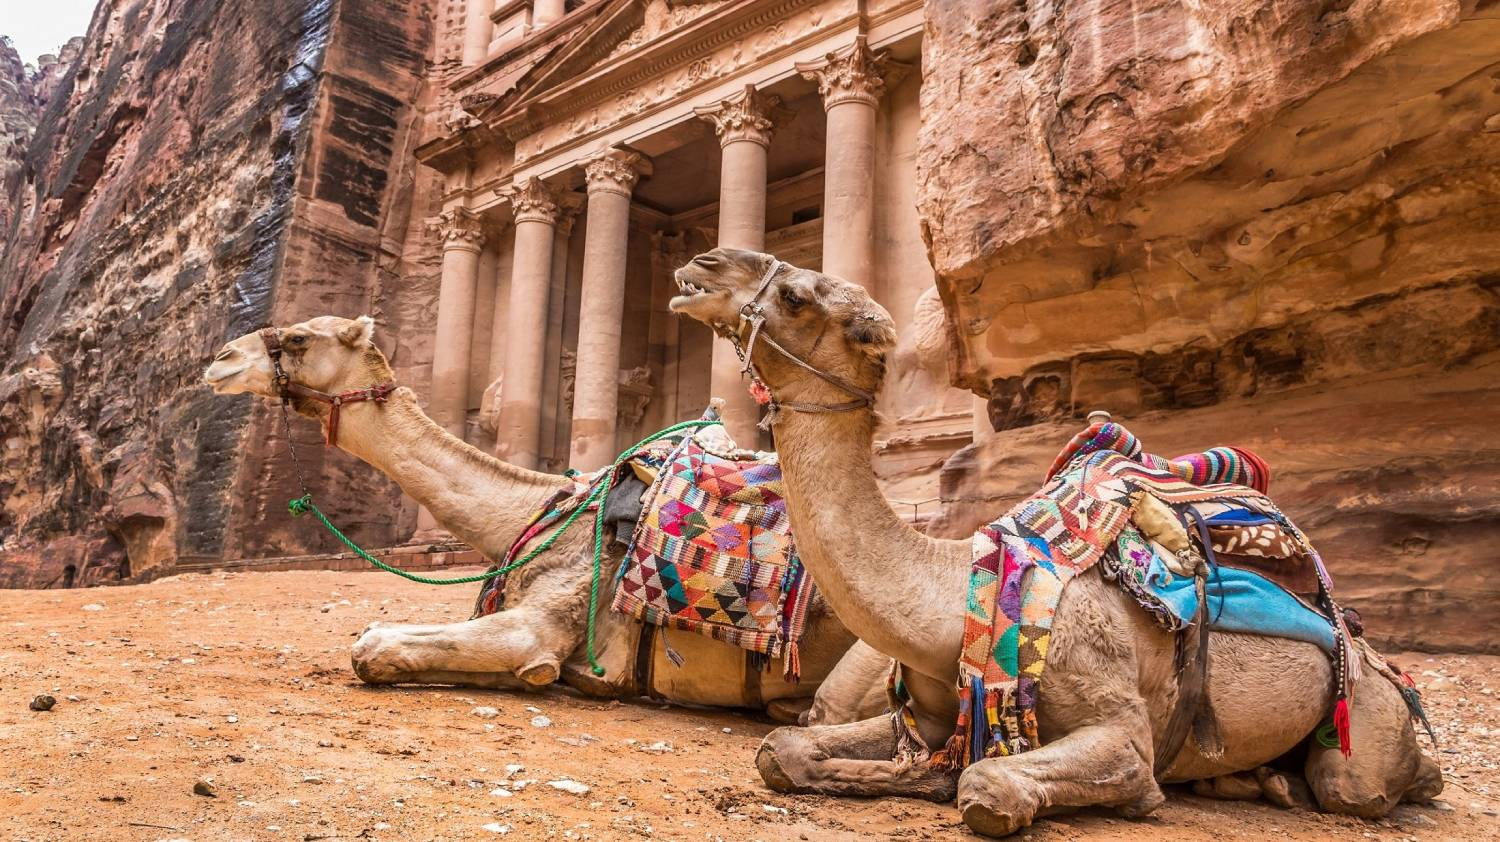 Jordan - The Best Countries To Visit In The Middle East